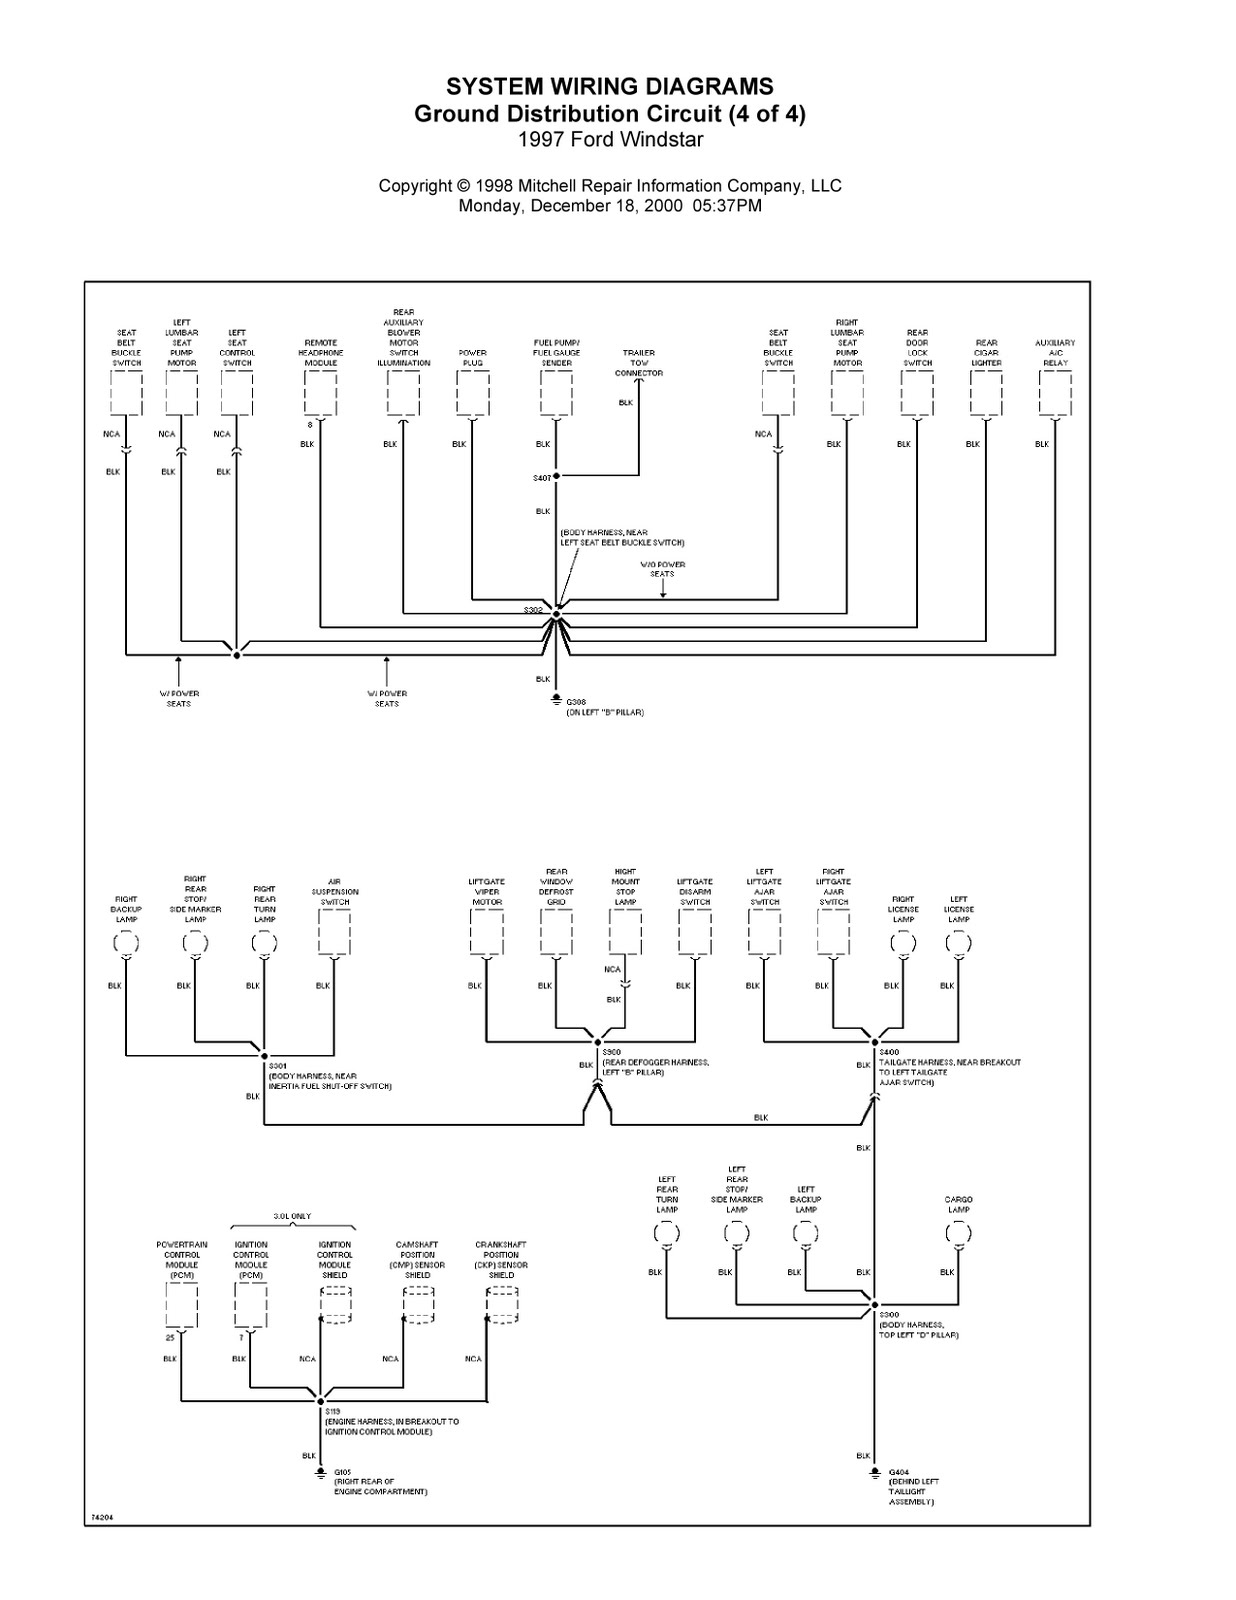 2001 Ford Windstar Radio Wiring Diagram Of Residential House 2000 3 8 Engine Exploded View Free